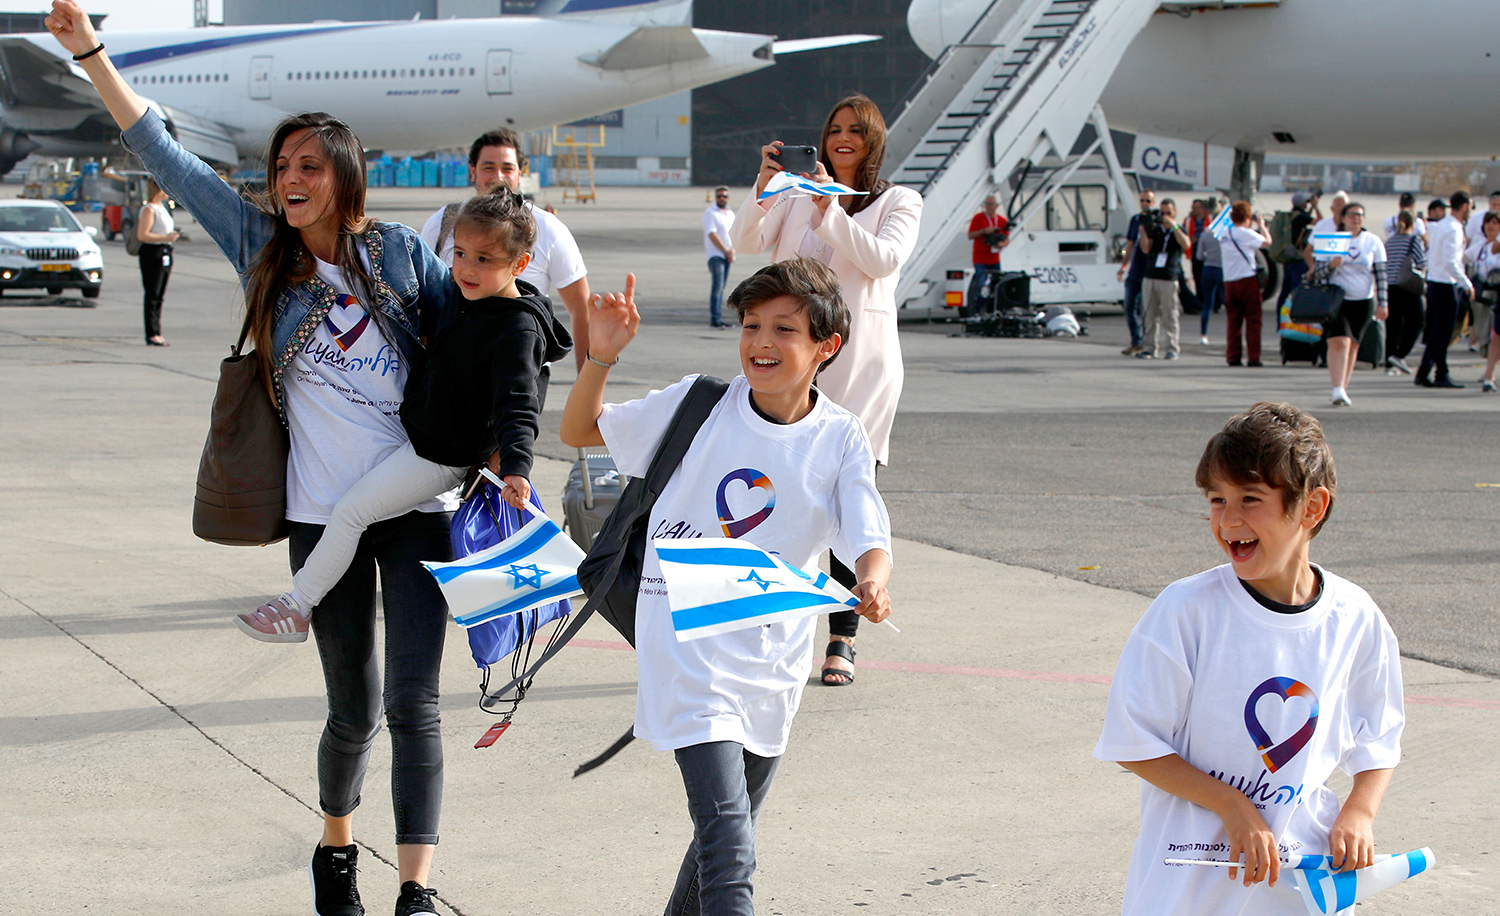 Jewish immigrants from France arriving at Ben Gurion International Airport in Israel on July 17, 2019. JACK GUEZ/AFP via Getty Images.